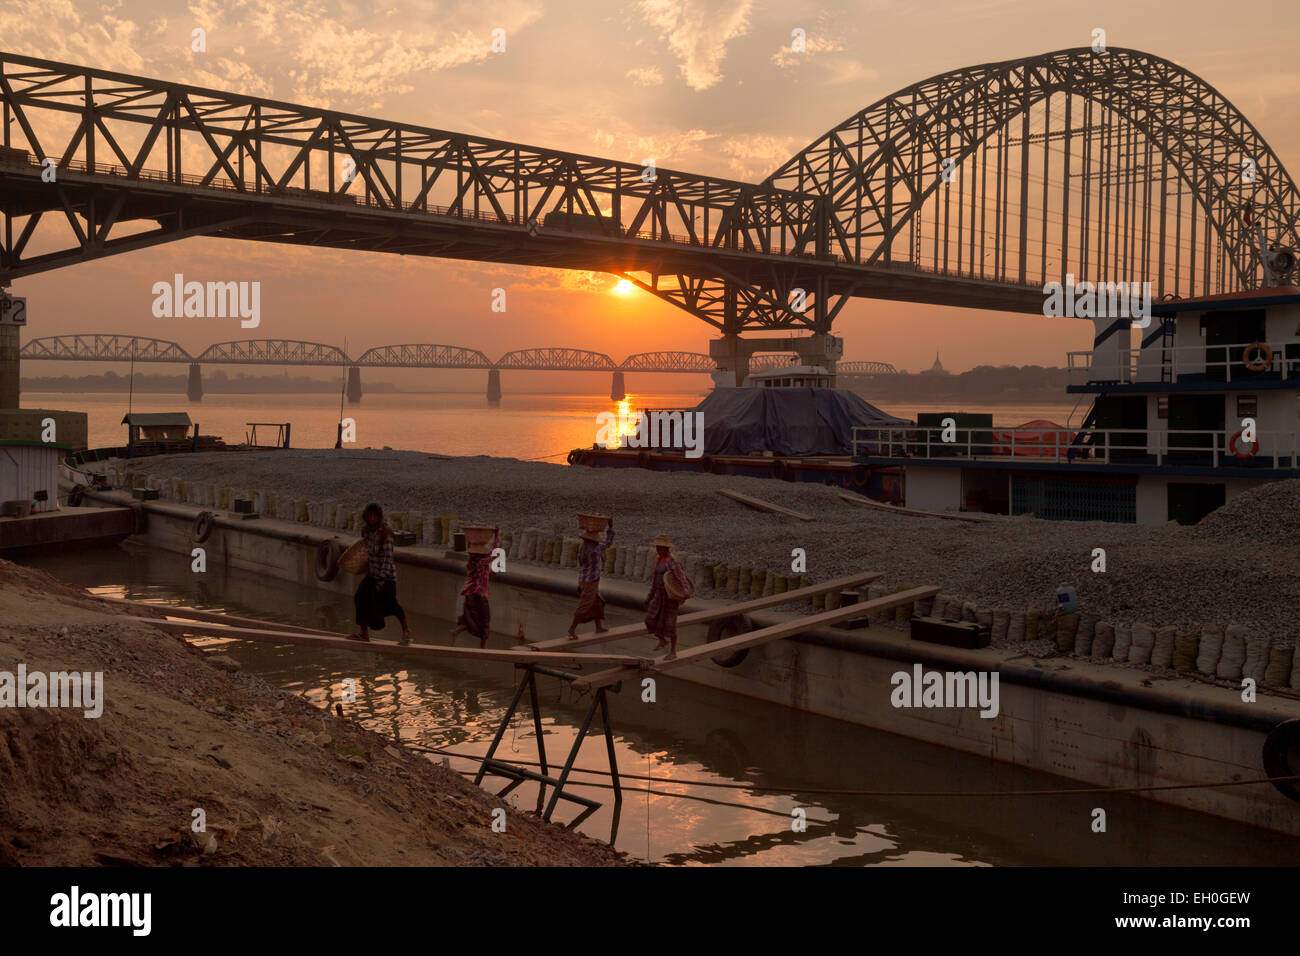 Sunset over the railway bridges over the Irrawaddy river at Mandalay, women working in the foreground,  Myanmar - Stock Image